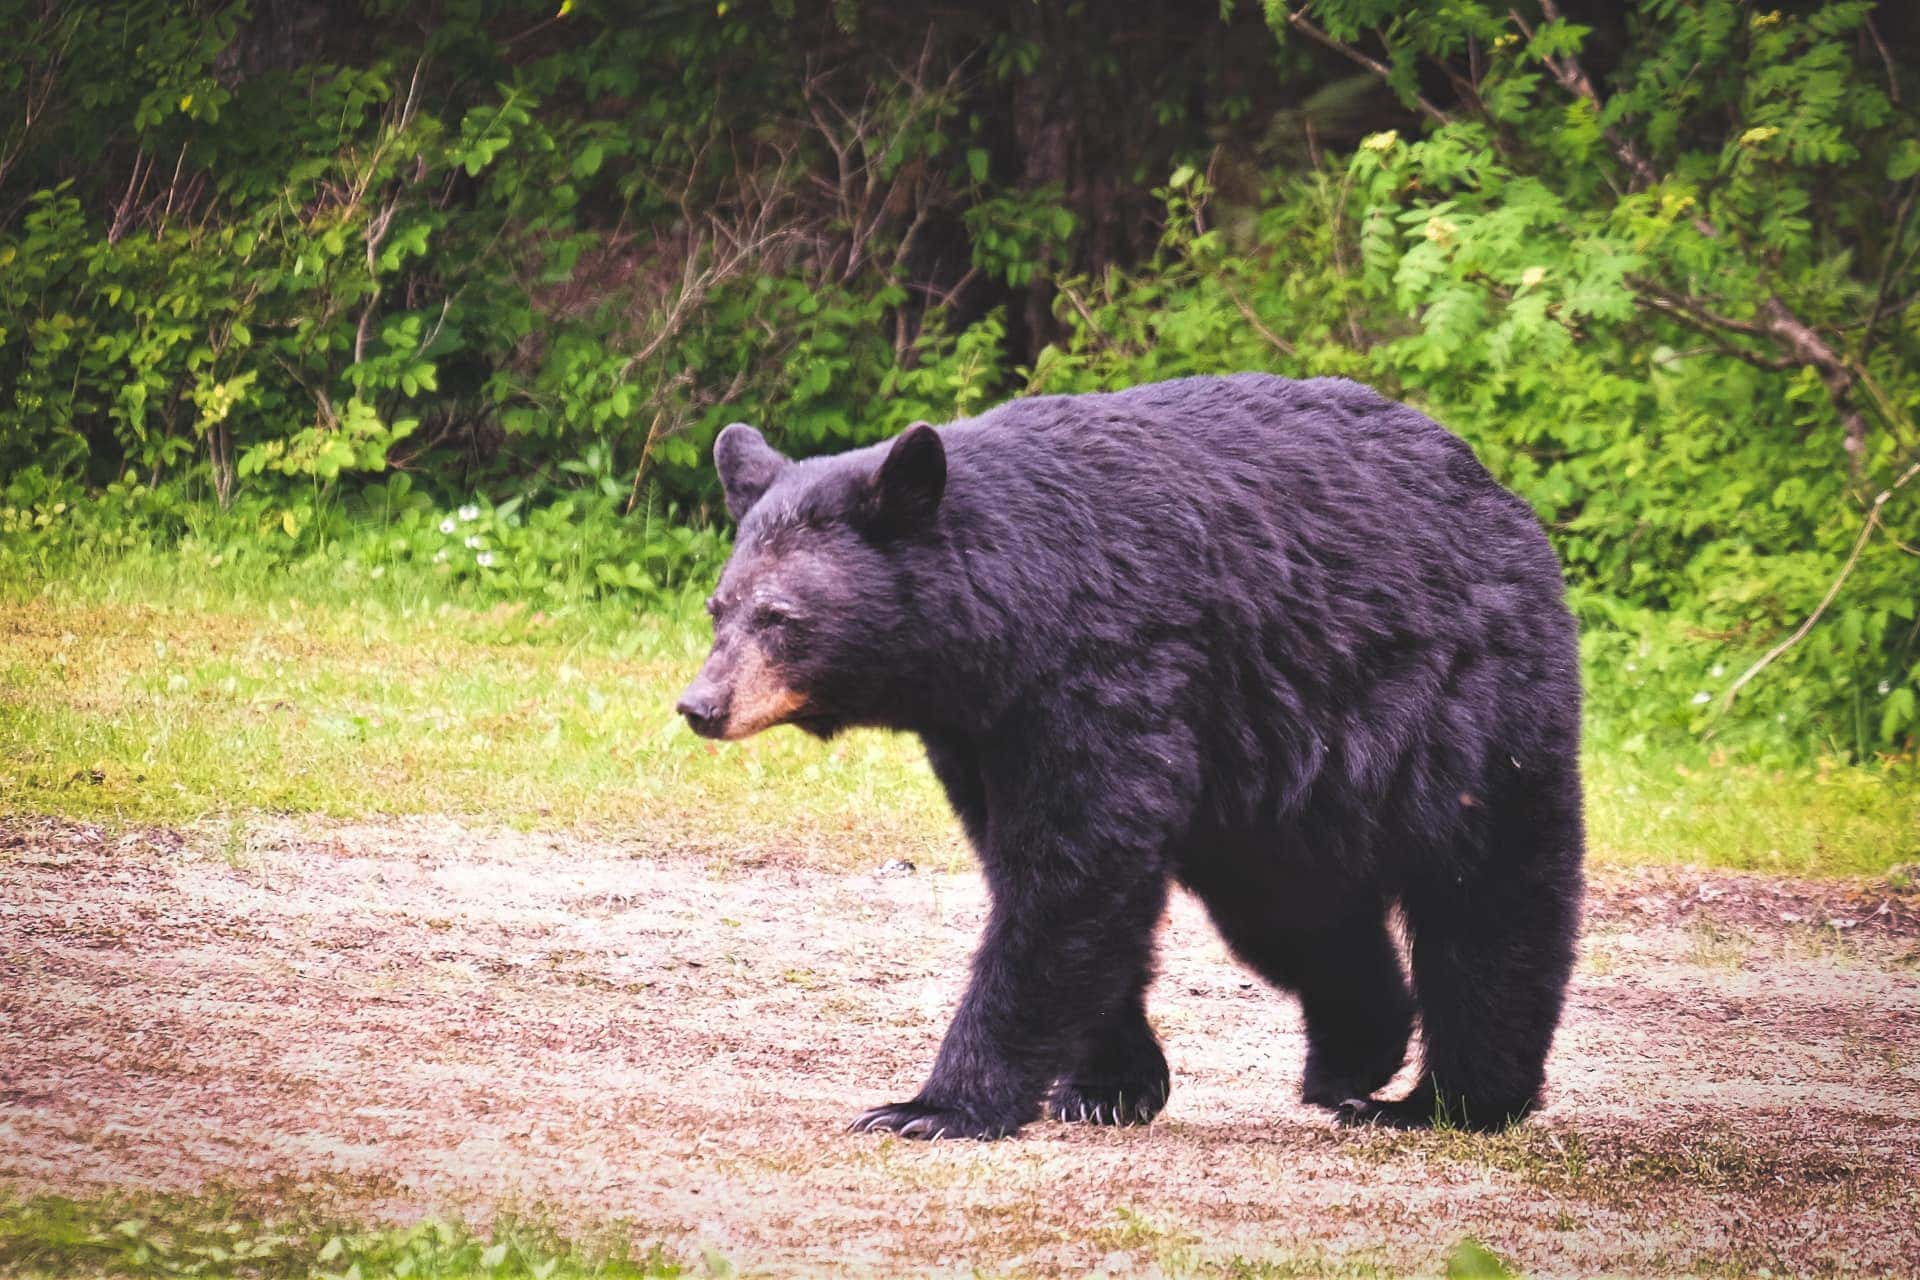 DNR proactively warning Stony Run-area residents to take precautions against bears in wake of 2019 mauling